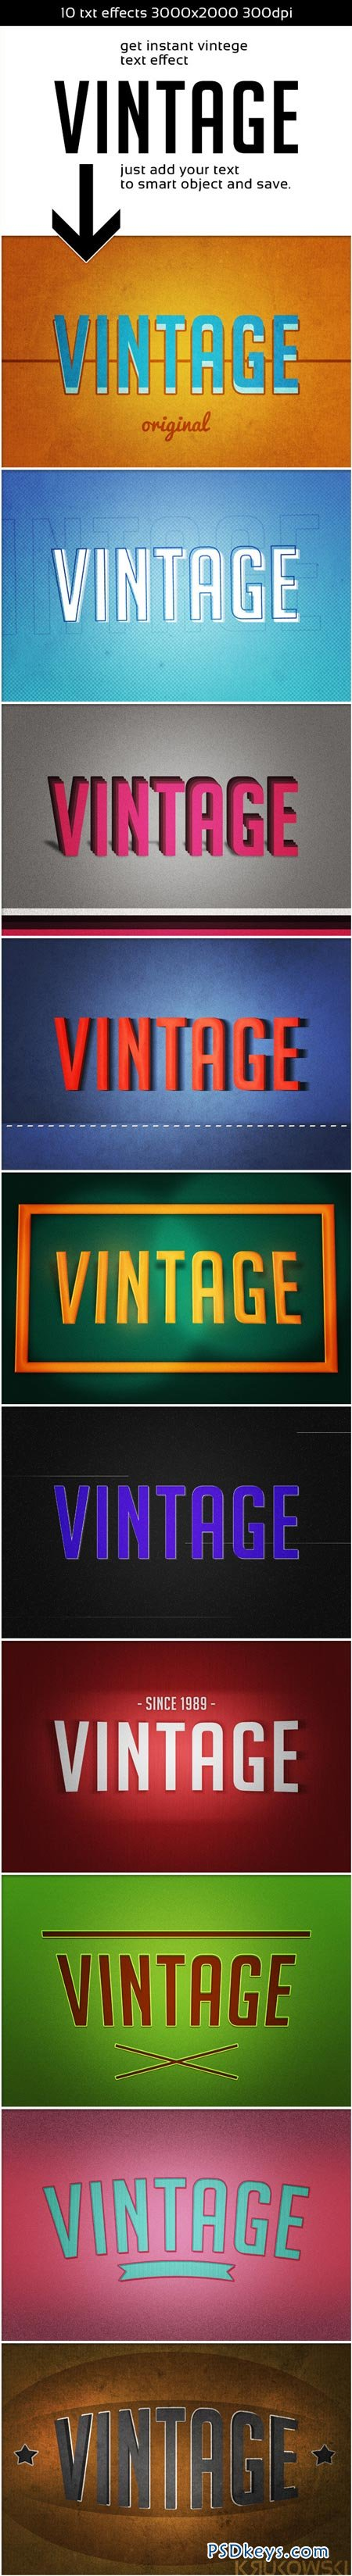 Vintage Instant Retro Text Effect 8980489